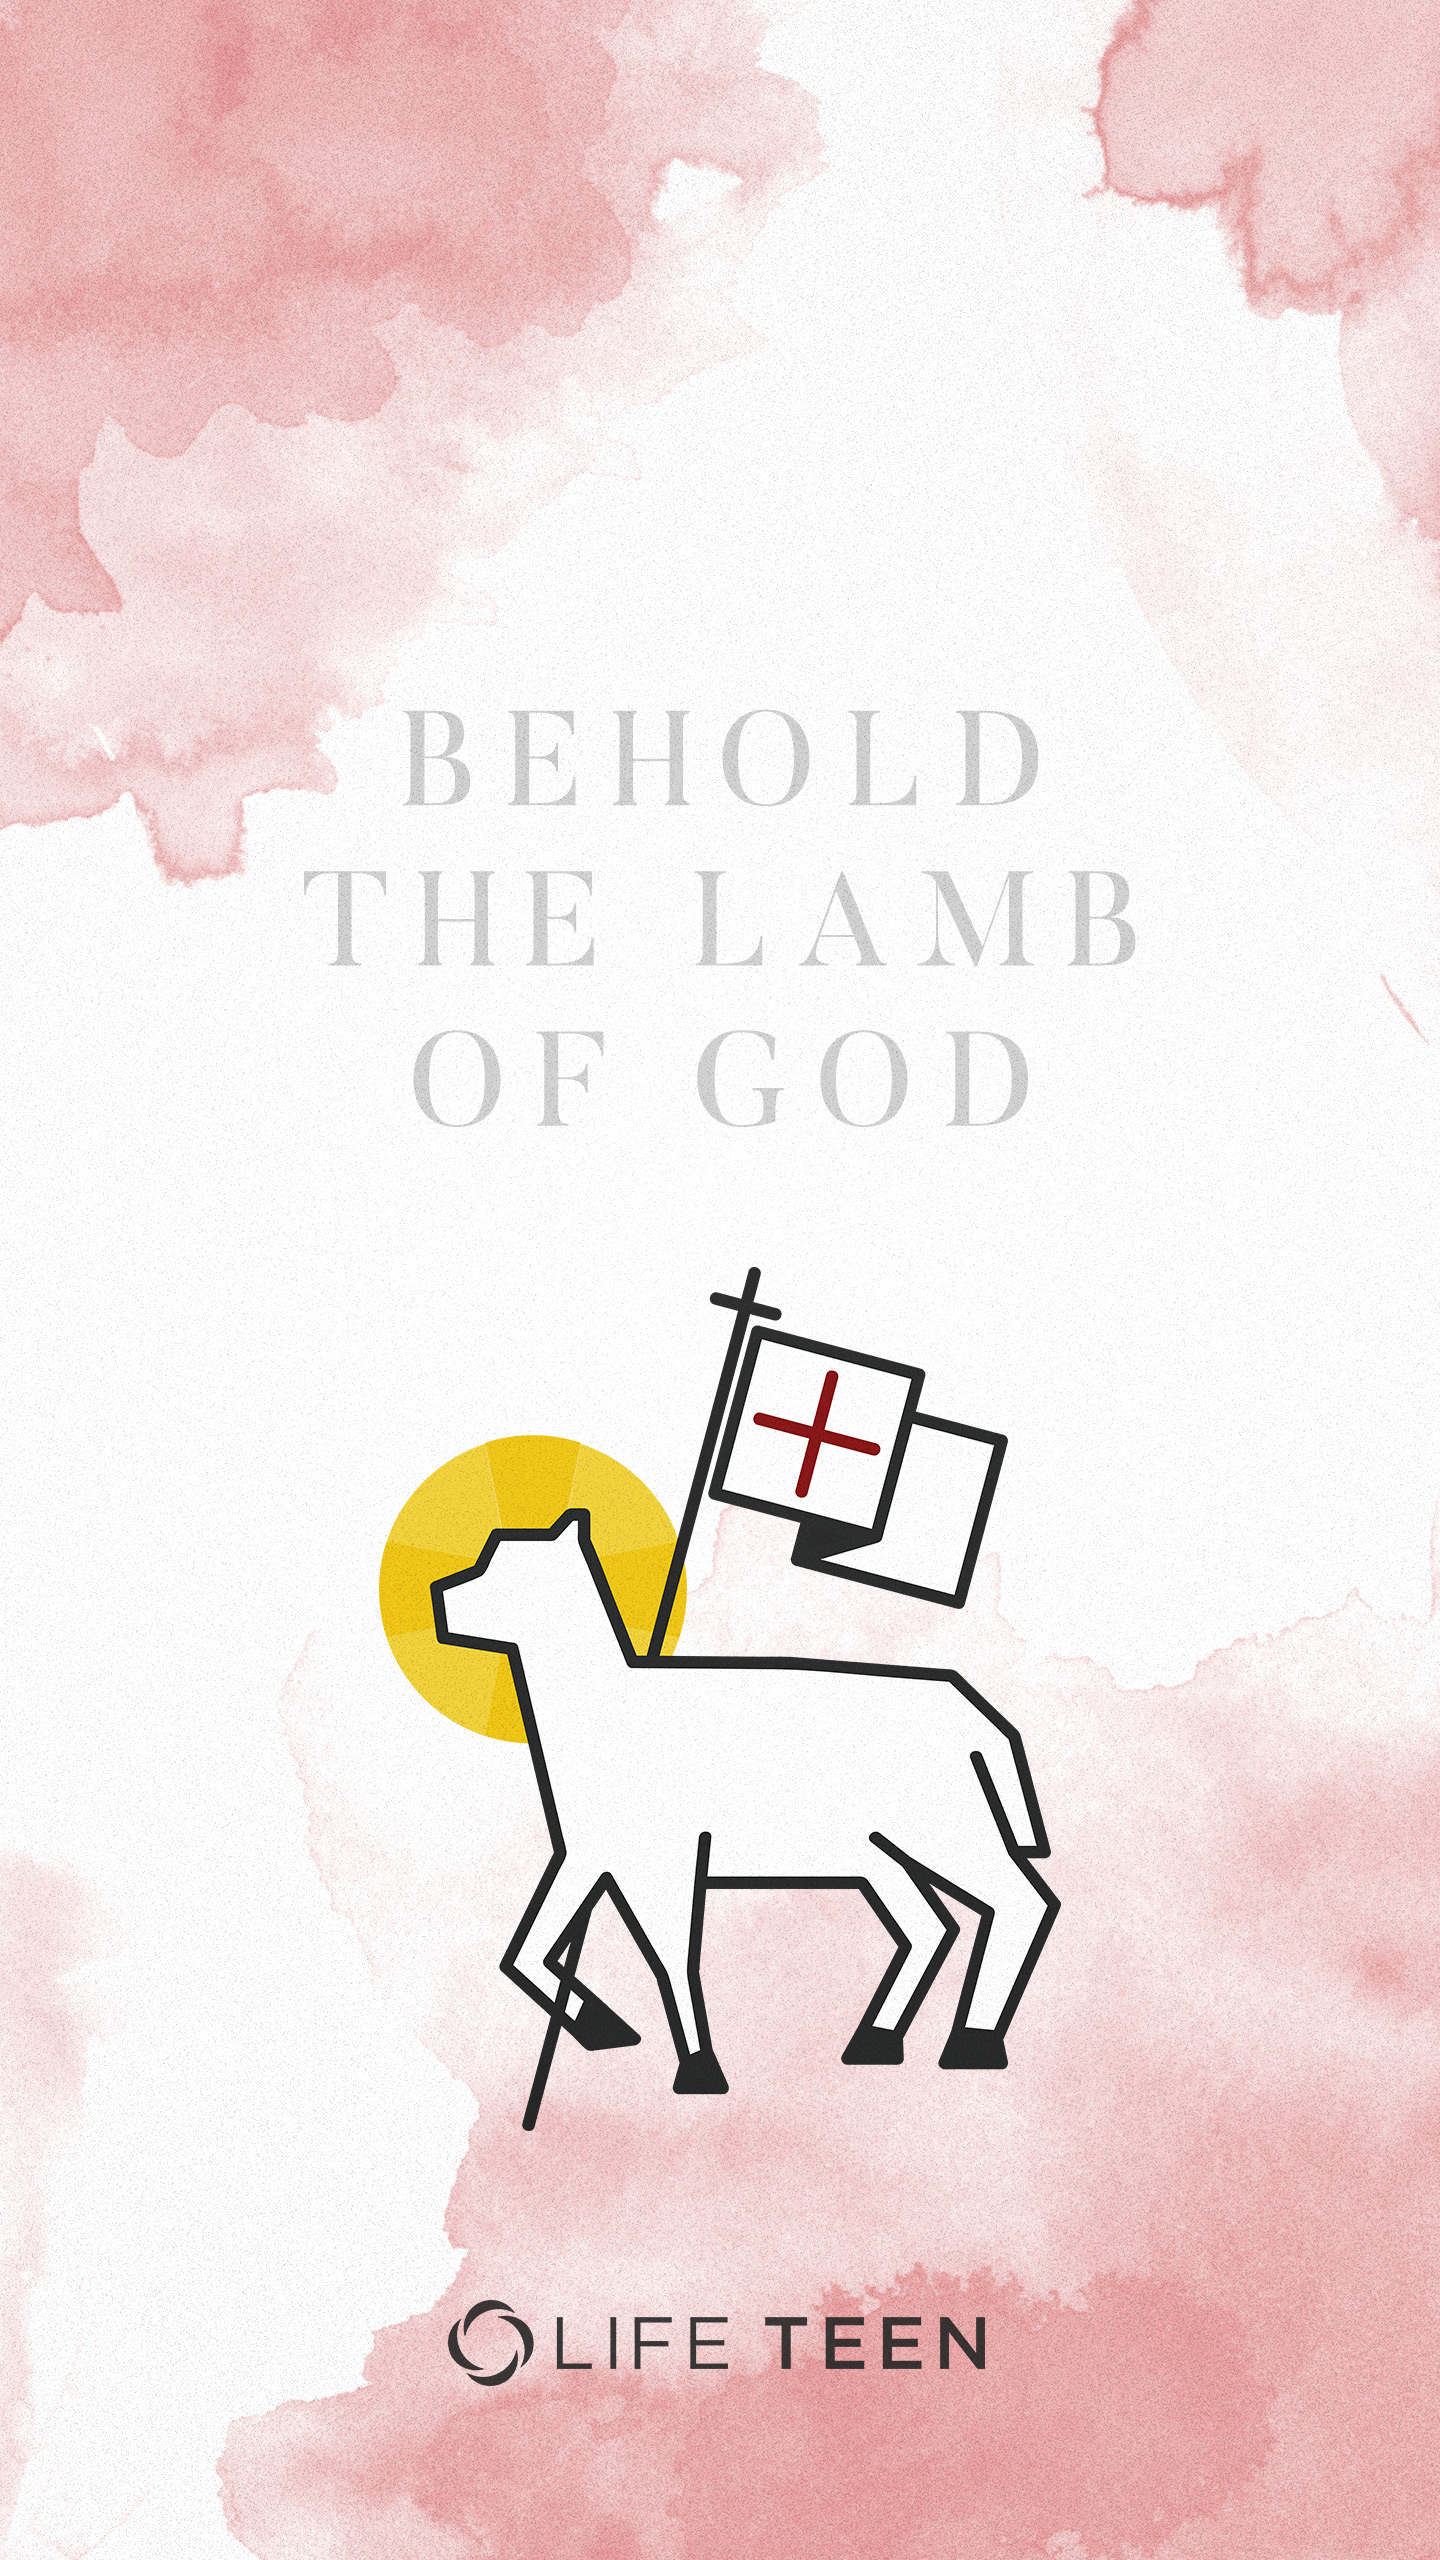 Behold the Lamb of God Easter Wallpaper   LifeTeencom for 1440x2560